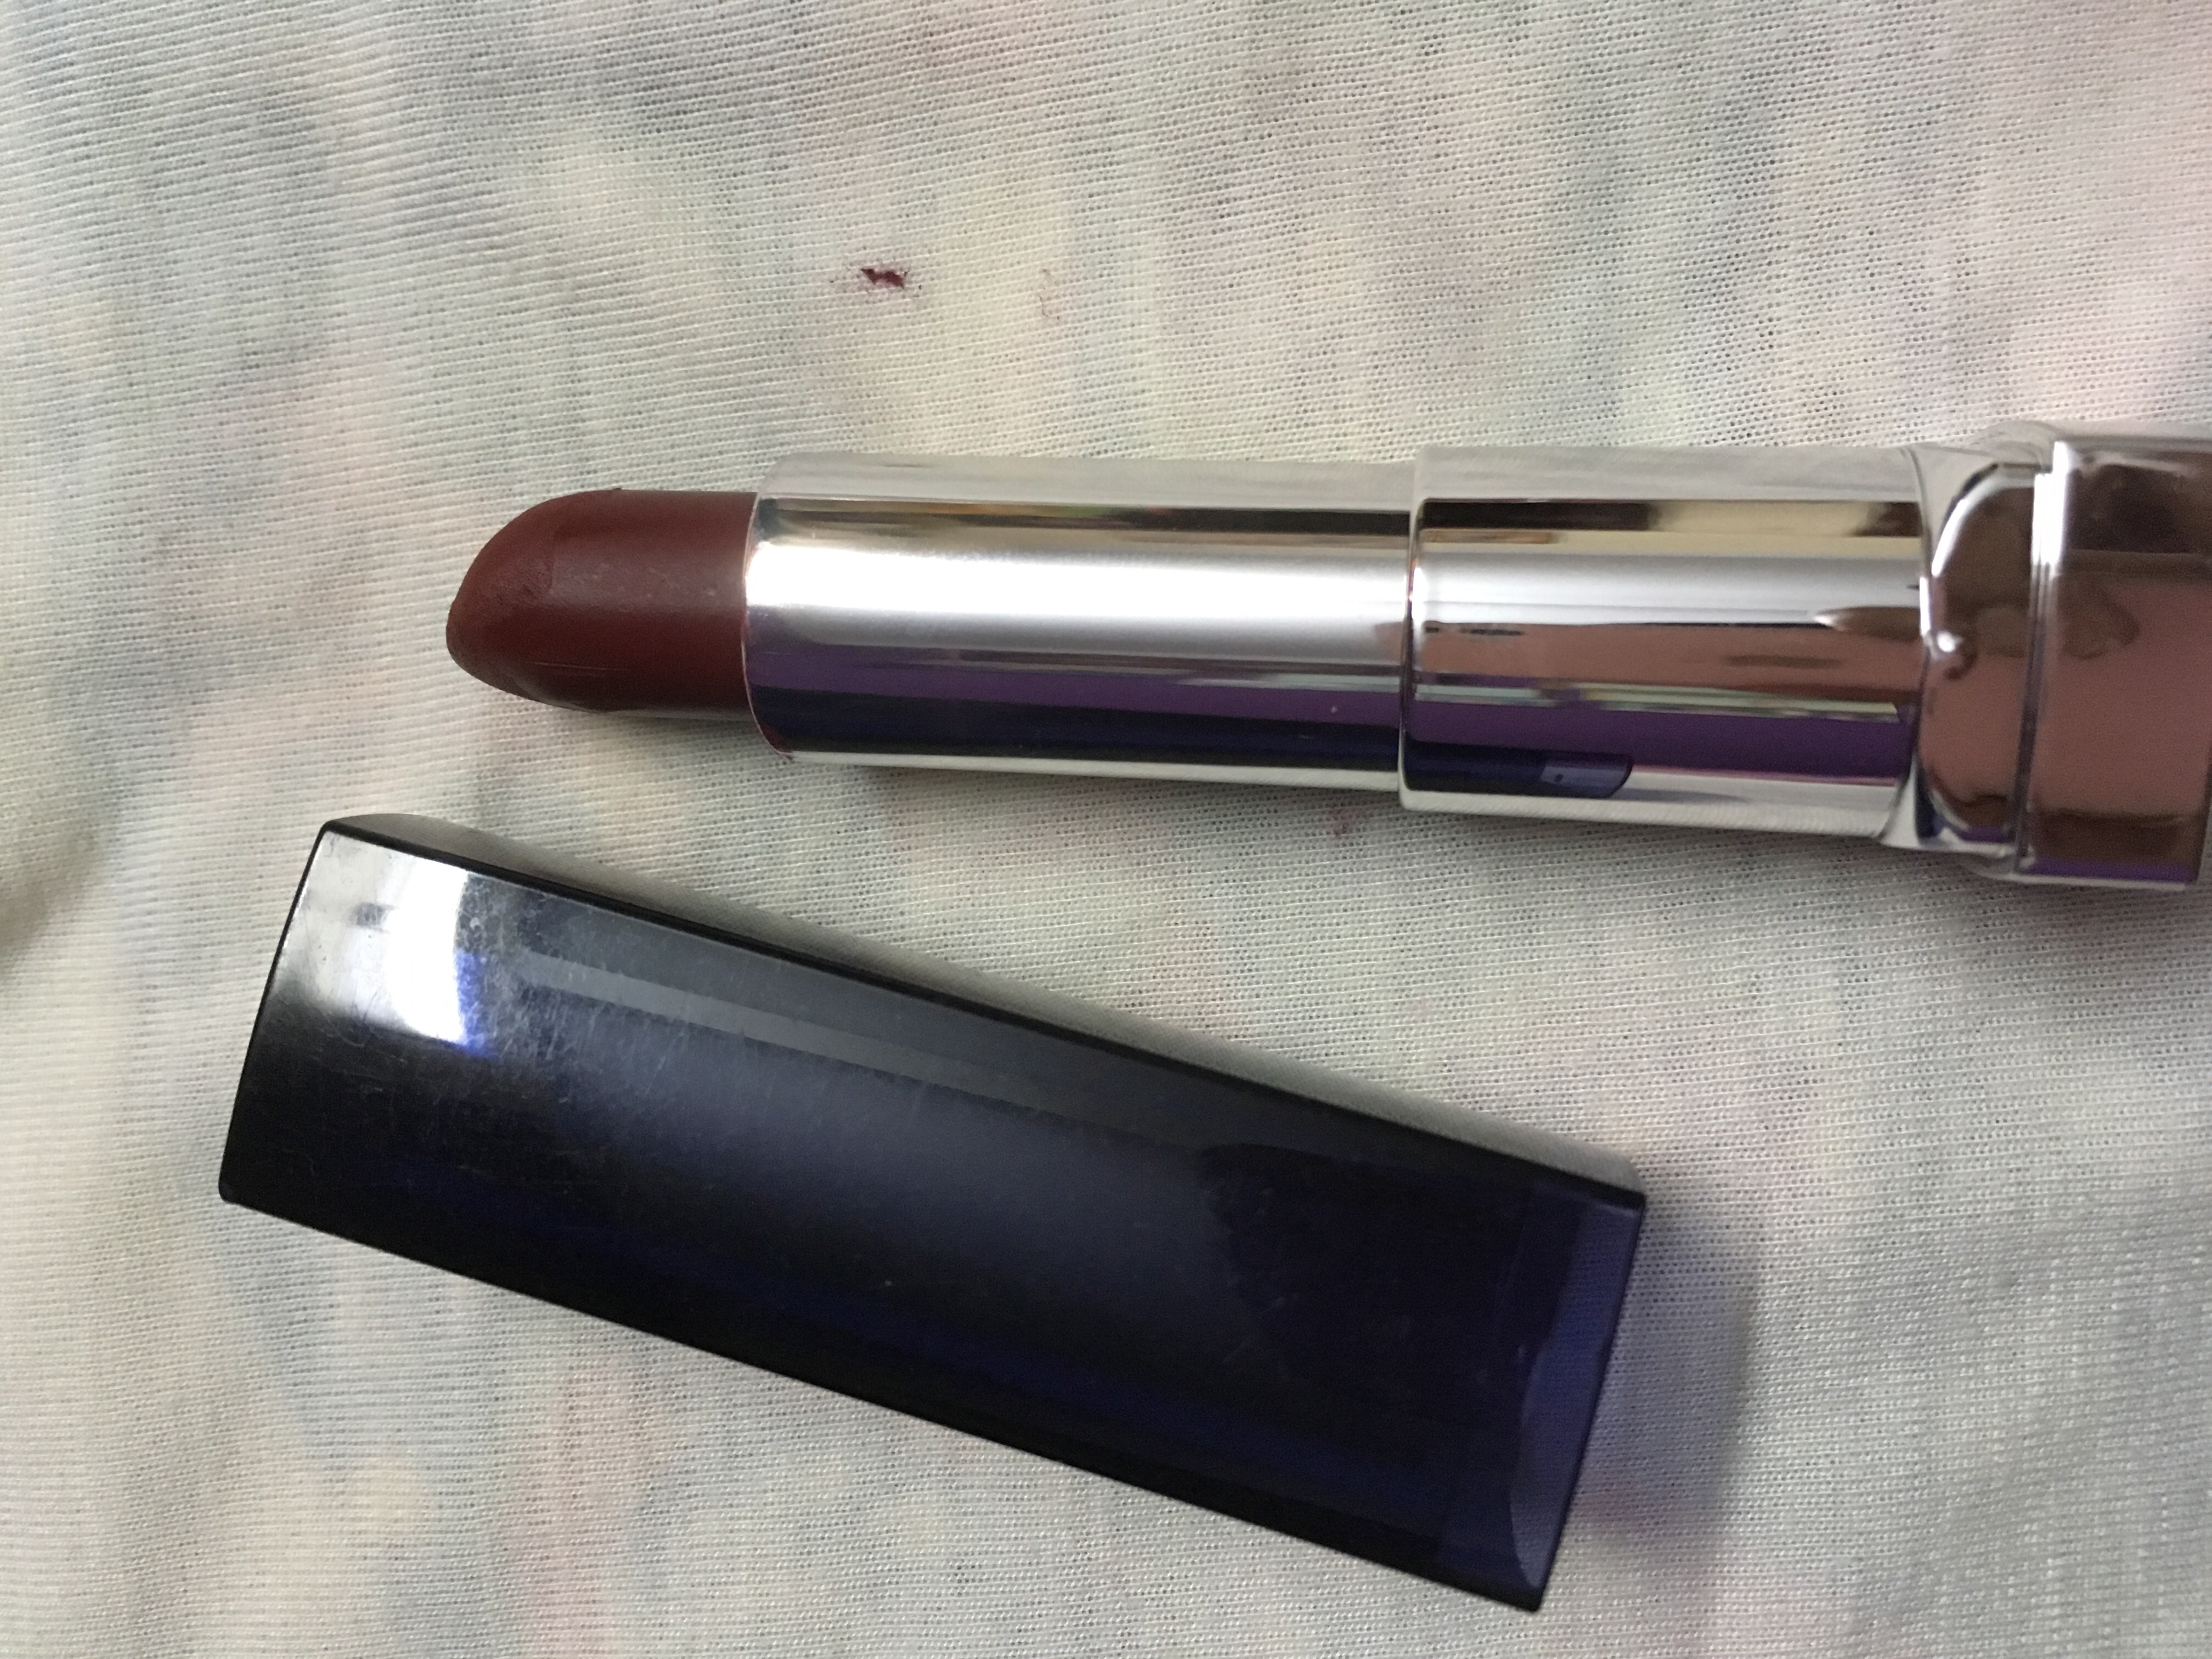 Maybelline Loaded Bolds Lipstick pic 3-Bold colours-By sayanikarmakar